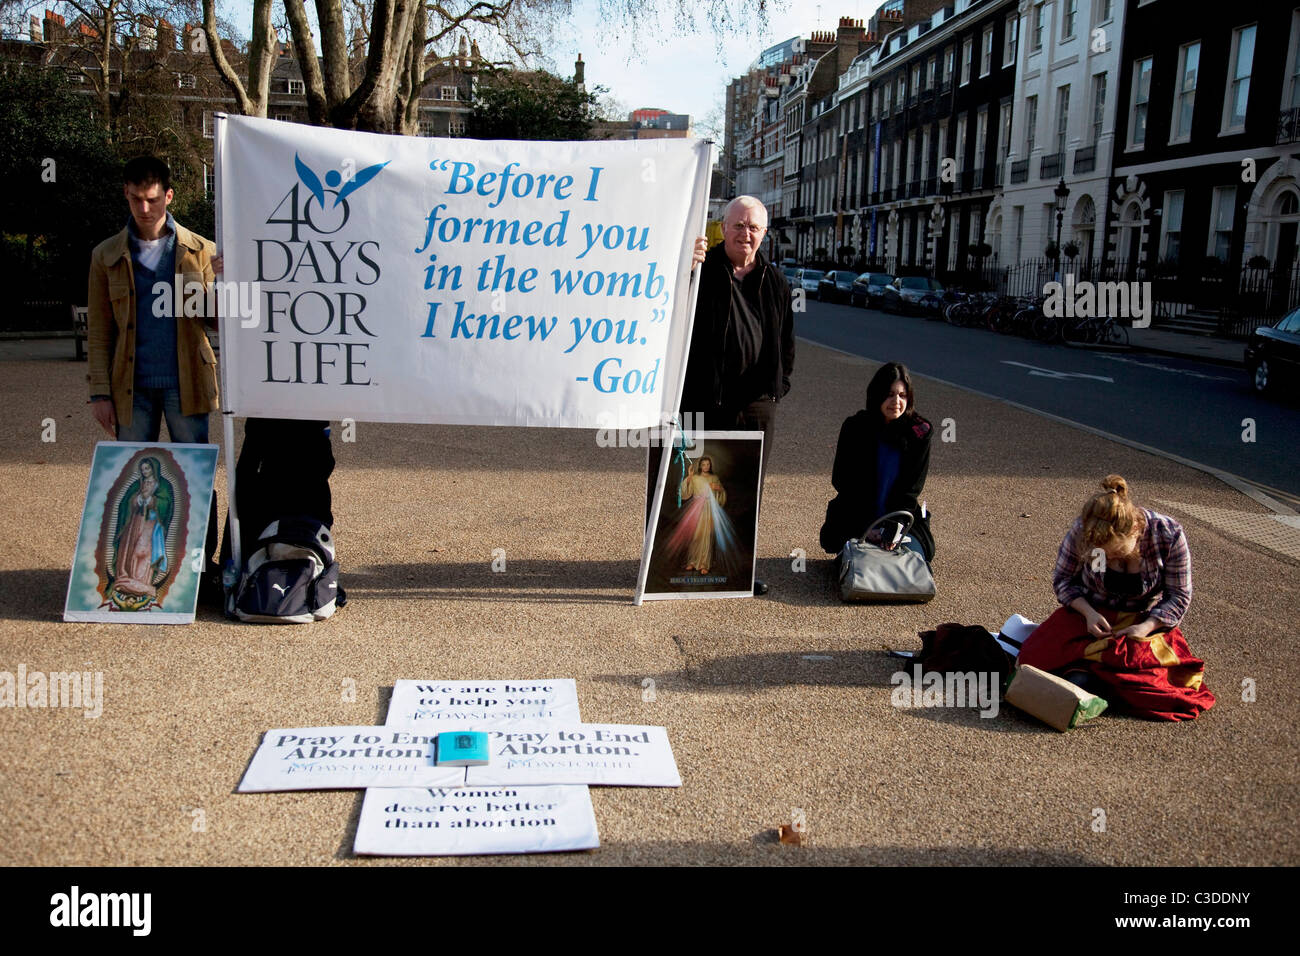 Members of 40 Days For Life protest outside a private abortion clinic. This is an anti abortion or pro life organisation. - Stock Image